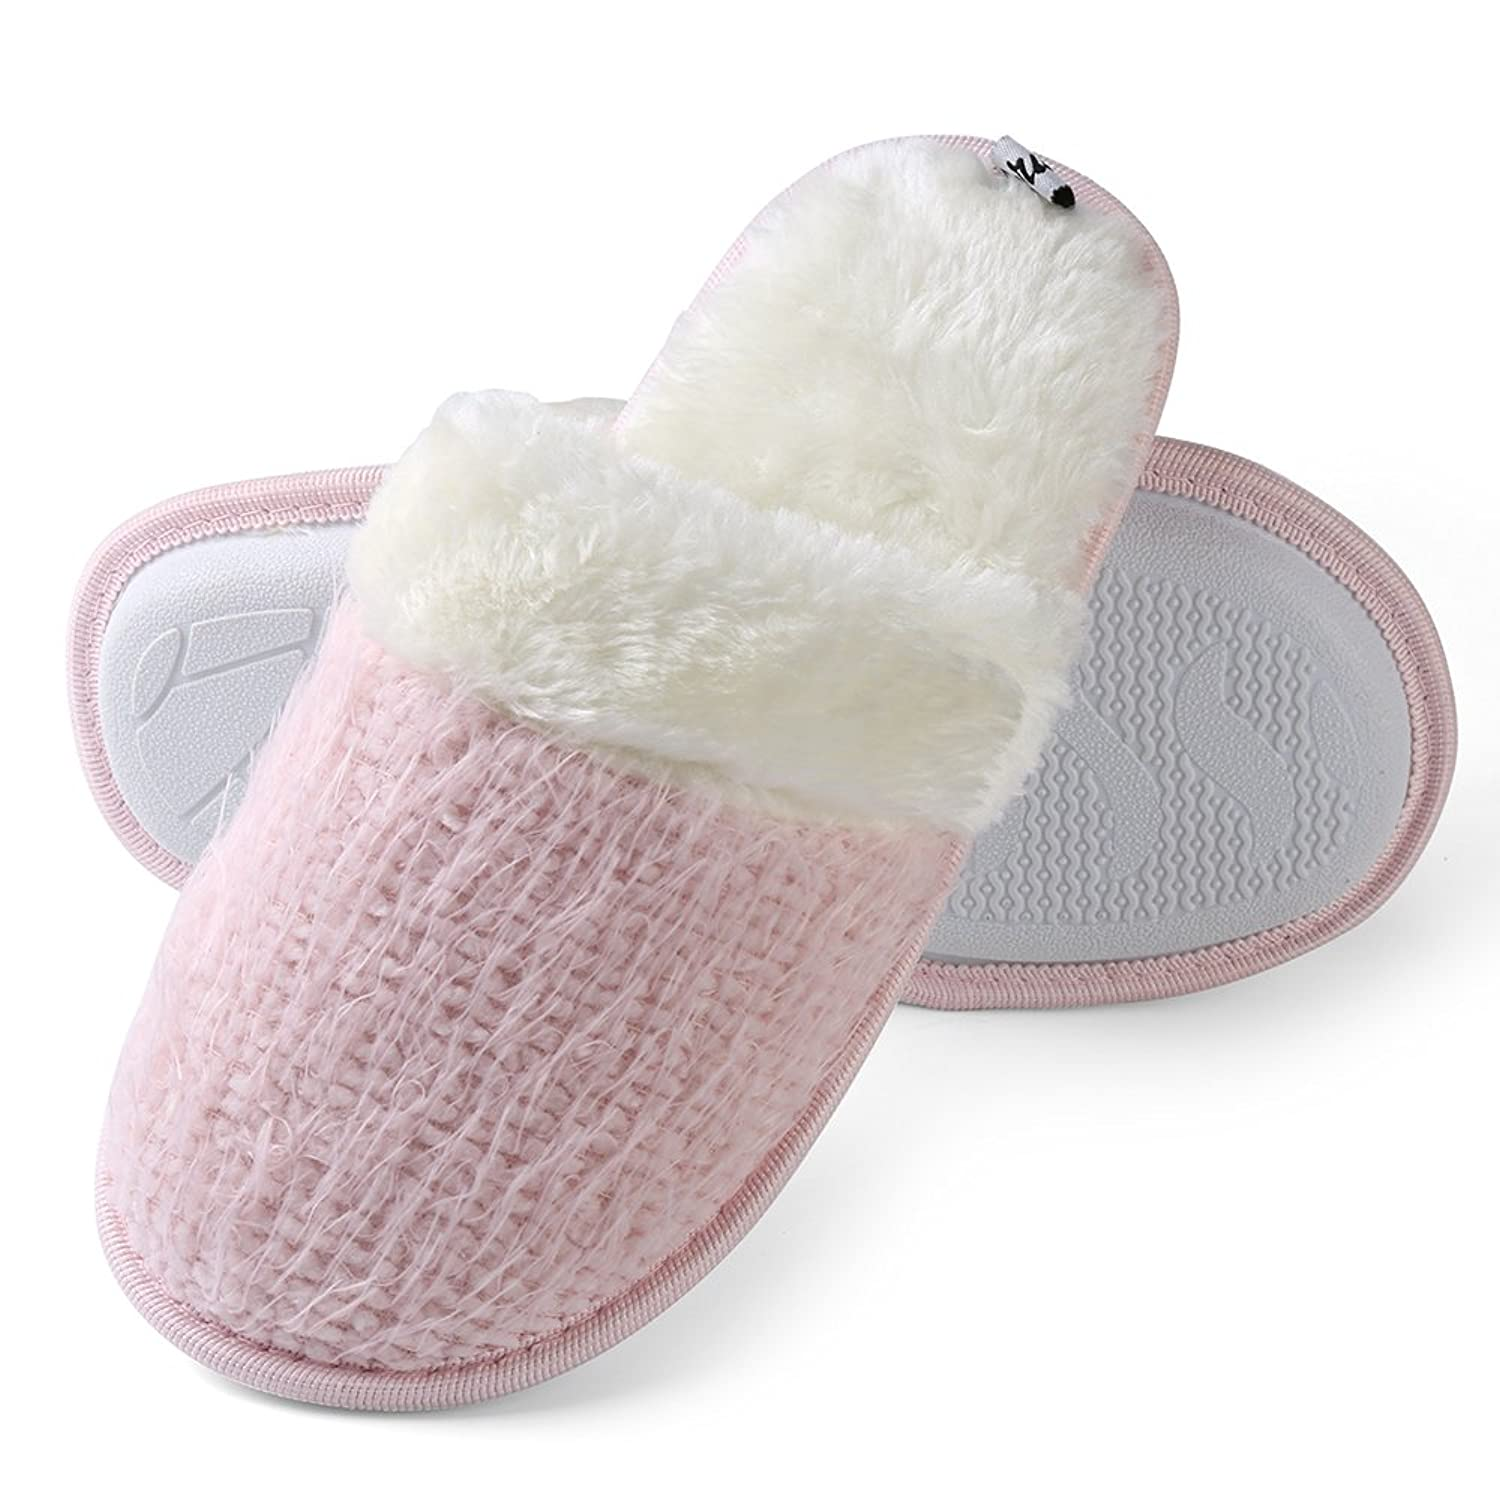 Aerusi Winter Warm Plush Slippers Indoor Shoes Home Couple Slipper